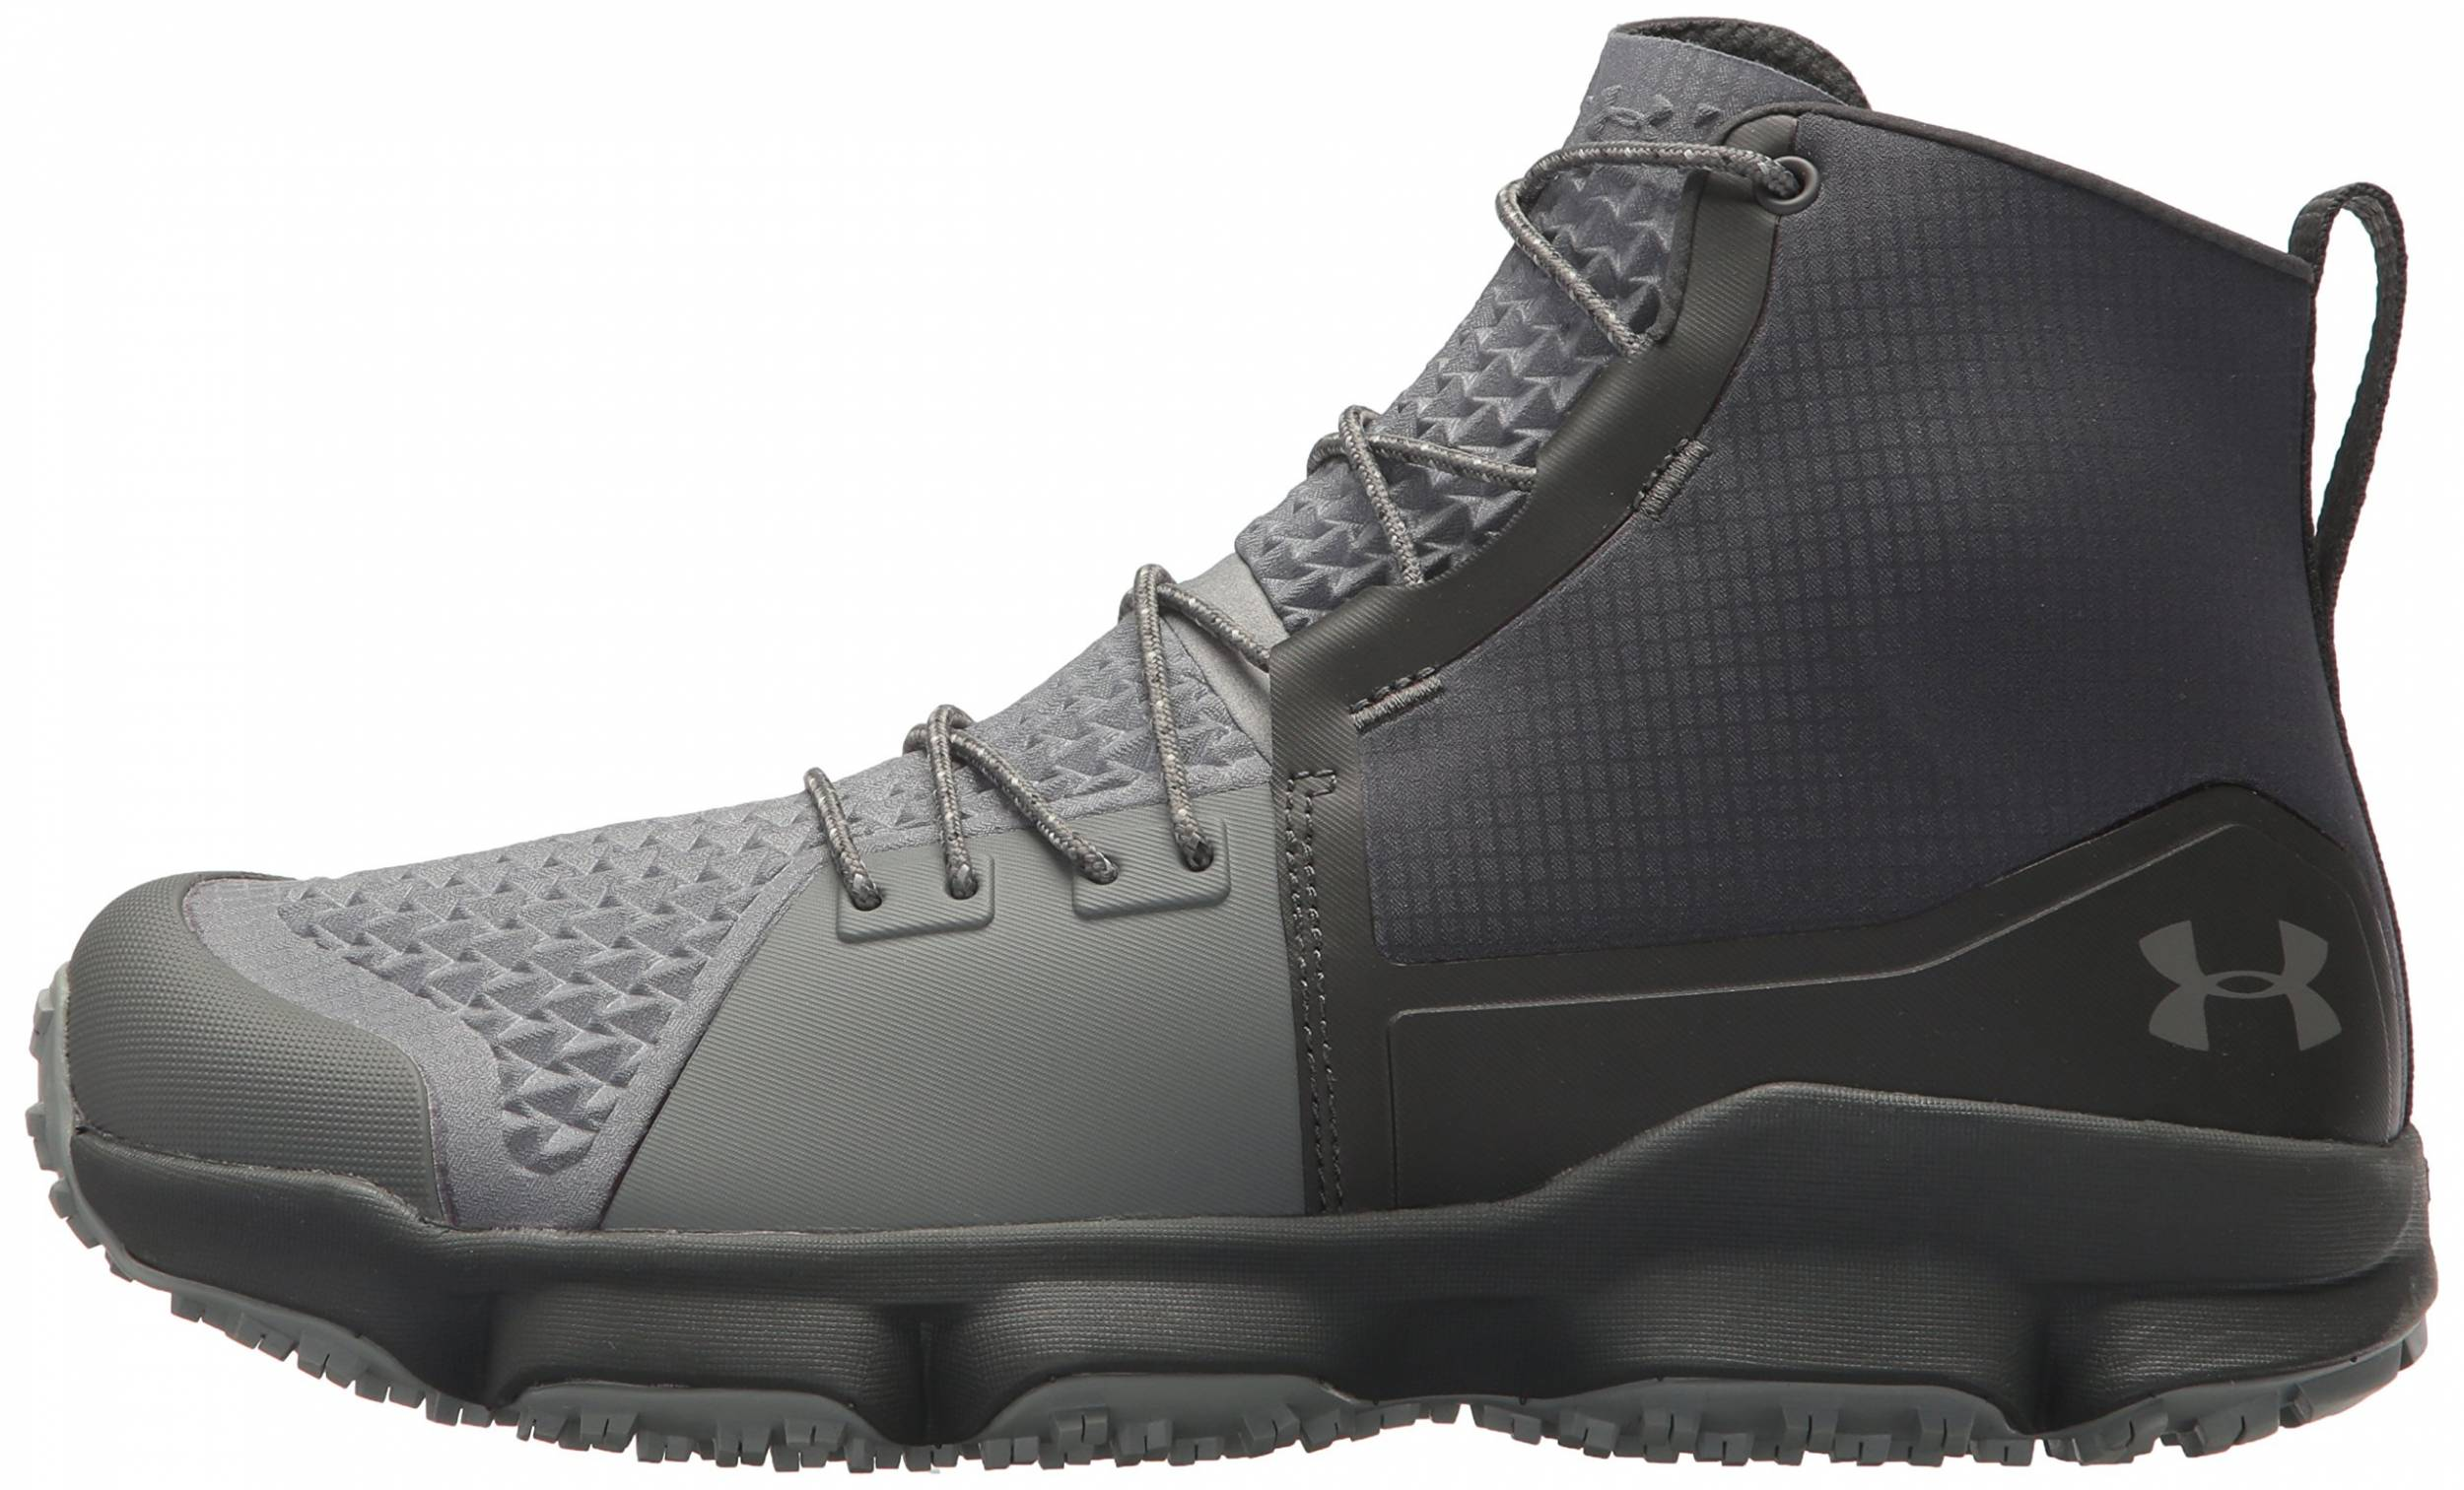 Review of Under Armour Speedfit 2.0